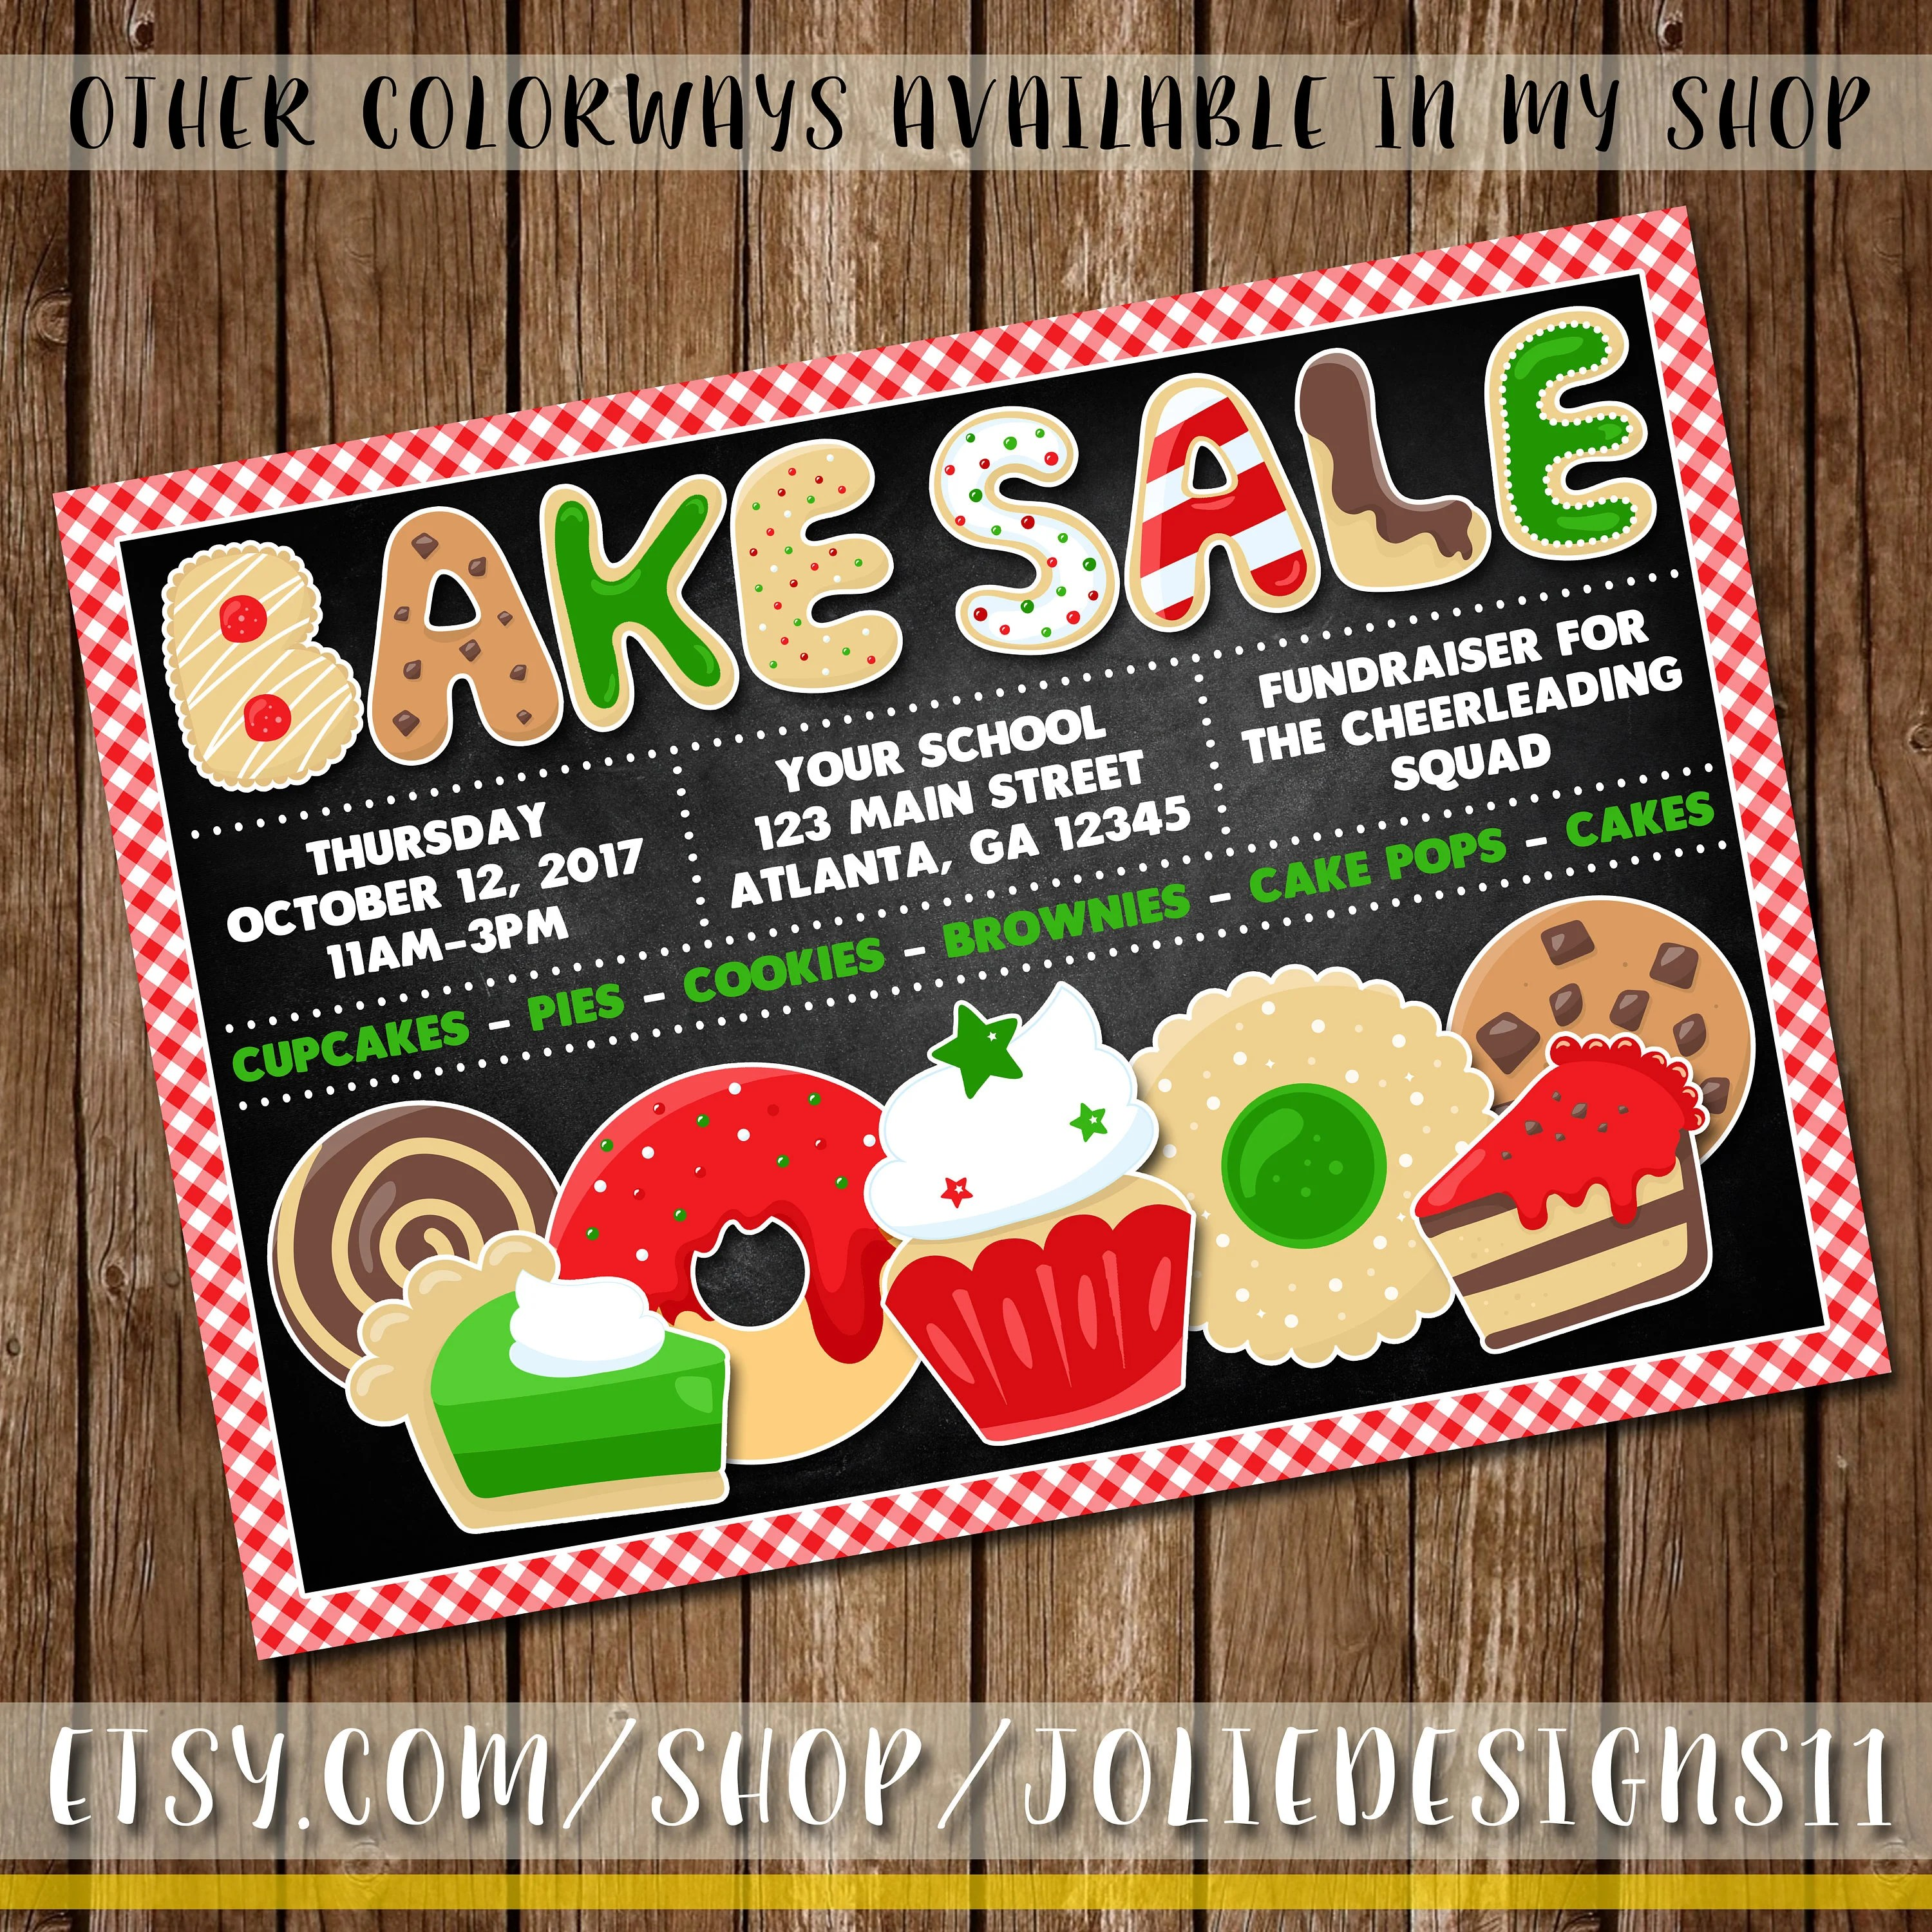 Bake Sale Flyer School Fundraiser/Charity Event Etsy